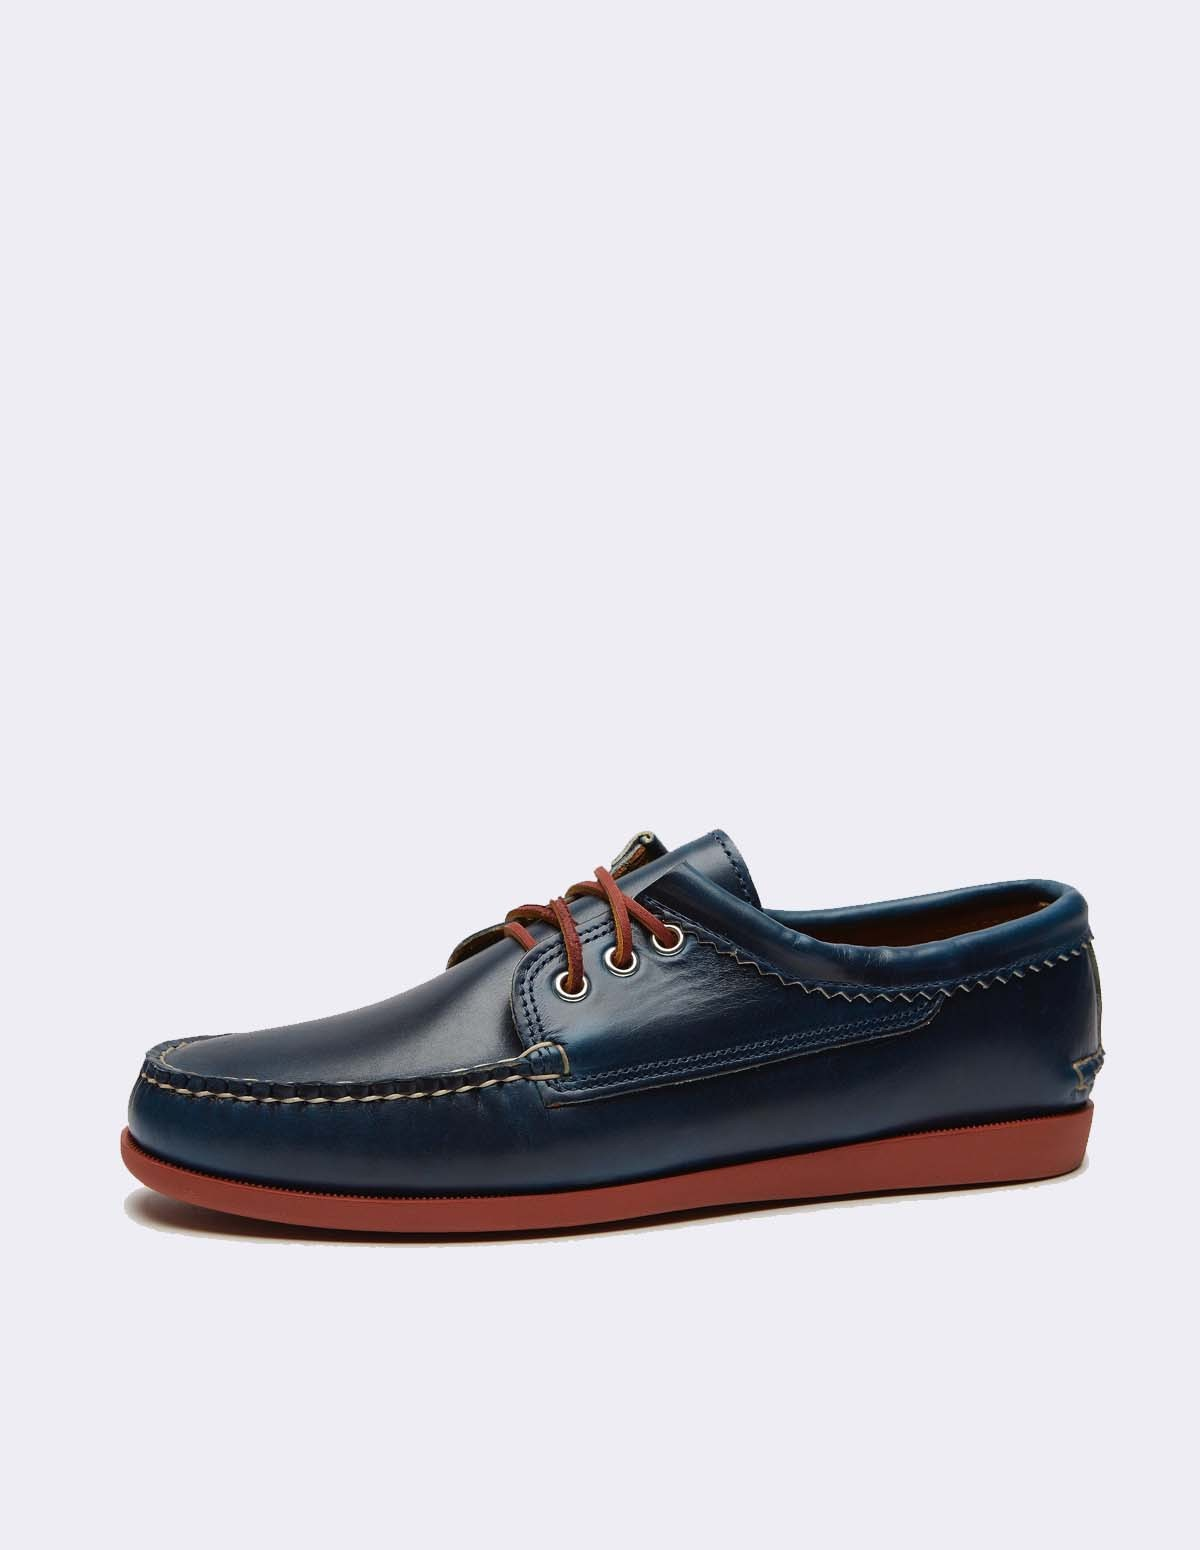 Quoddy Blutcher Leather - NAVY / BRICK SOLE